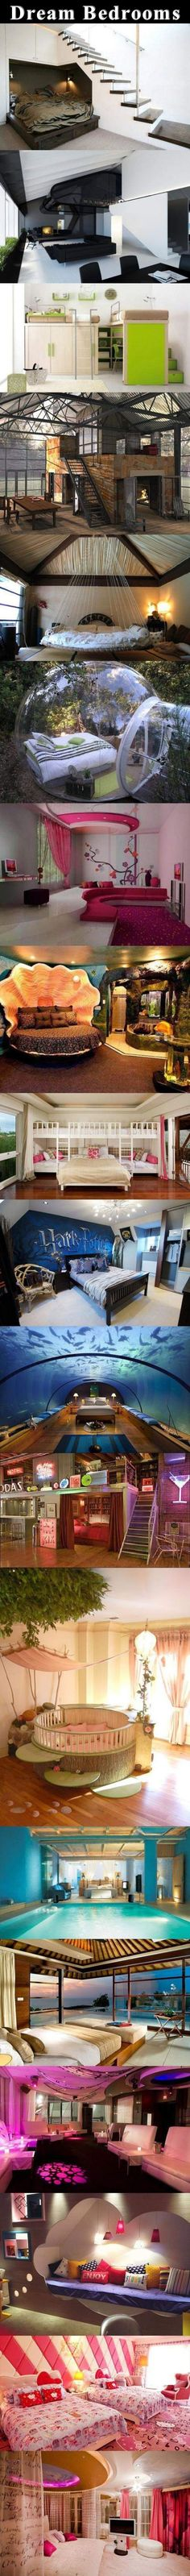 Dream Bedrooms Awesomeness Dream Bedroom Dream Rooms Home Bedroom Awesome Bedrooms, Cool Rooms, Coolest Bedrooms, Awesome Beds, Coolest Beds, Beautiful Bedrooms, Awesome House, Beautiful Beds, Beautiful Images